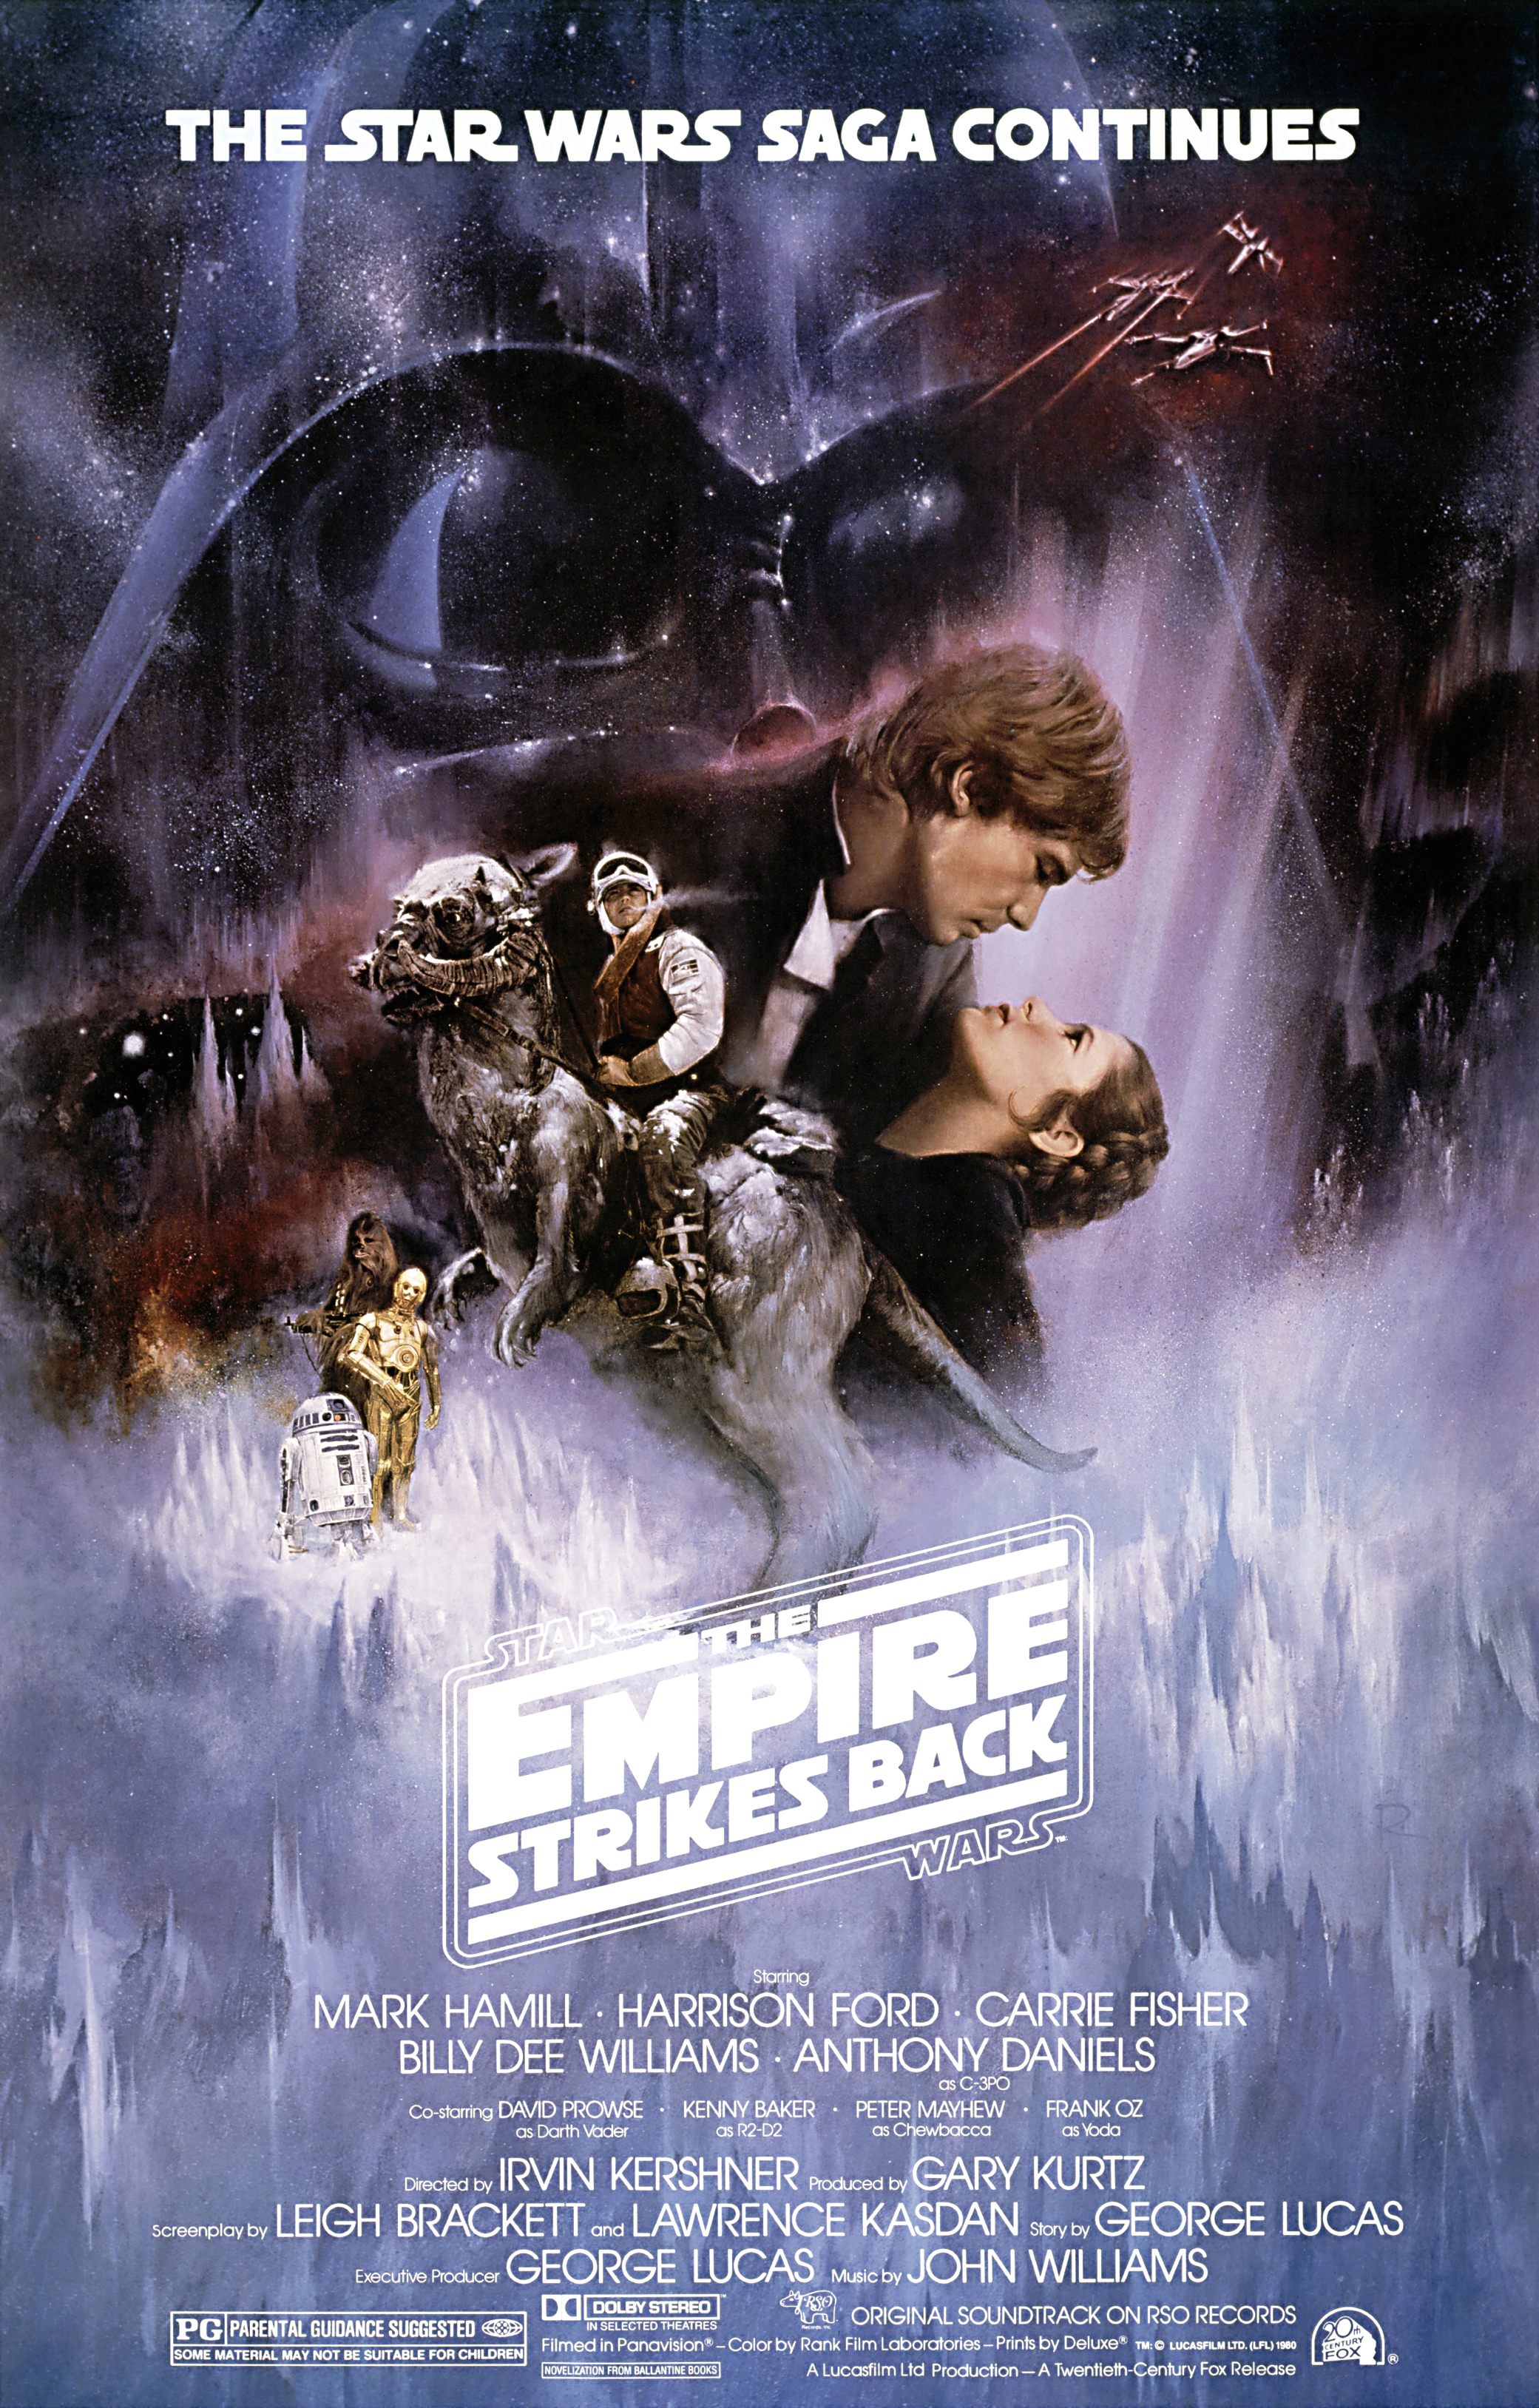 http://images1.wikia.nocookie.net/__cb20061201083419/starwars/images/e/e4/Empire_strikes_back_old.jpg